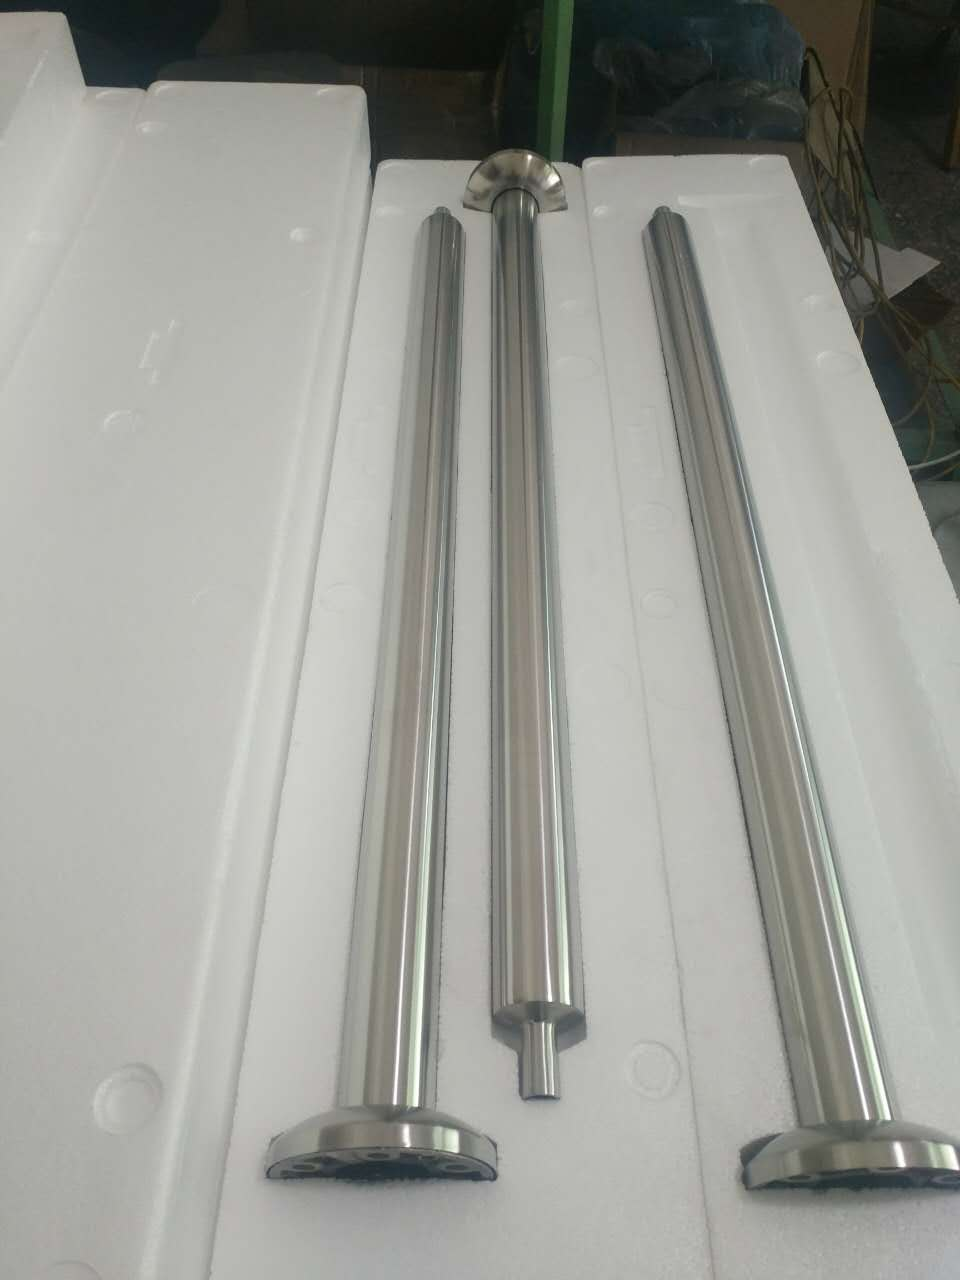 Stainless Steel Cable wire or Glass Panel Railing Square Handrail Post